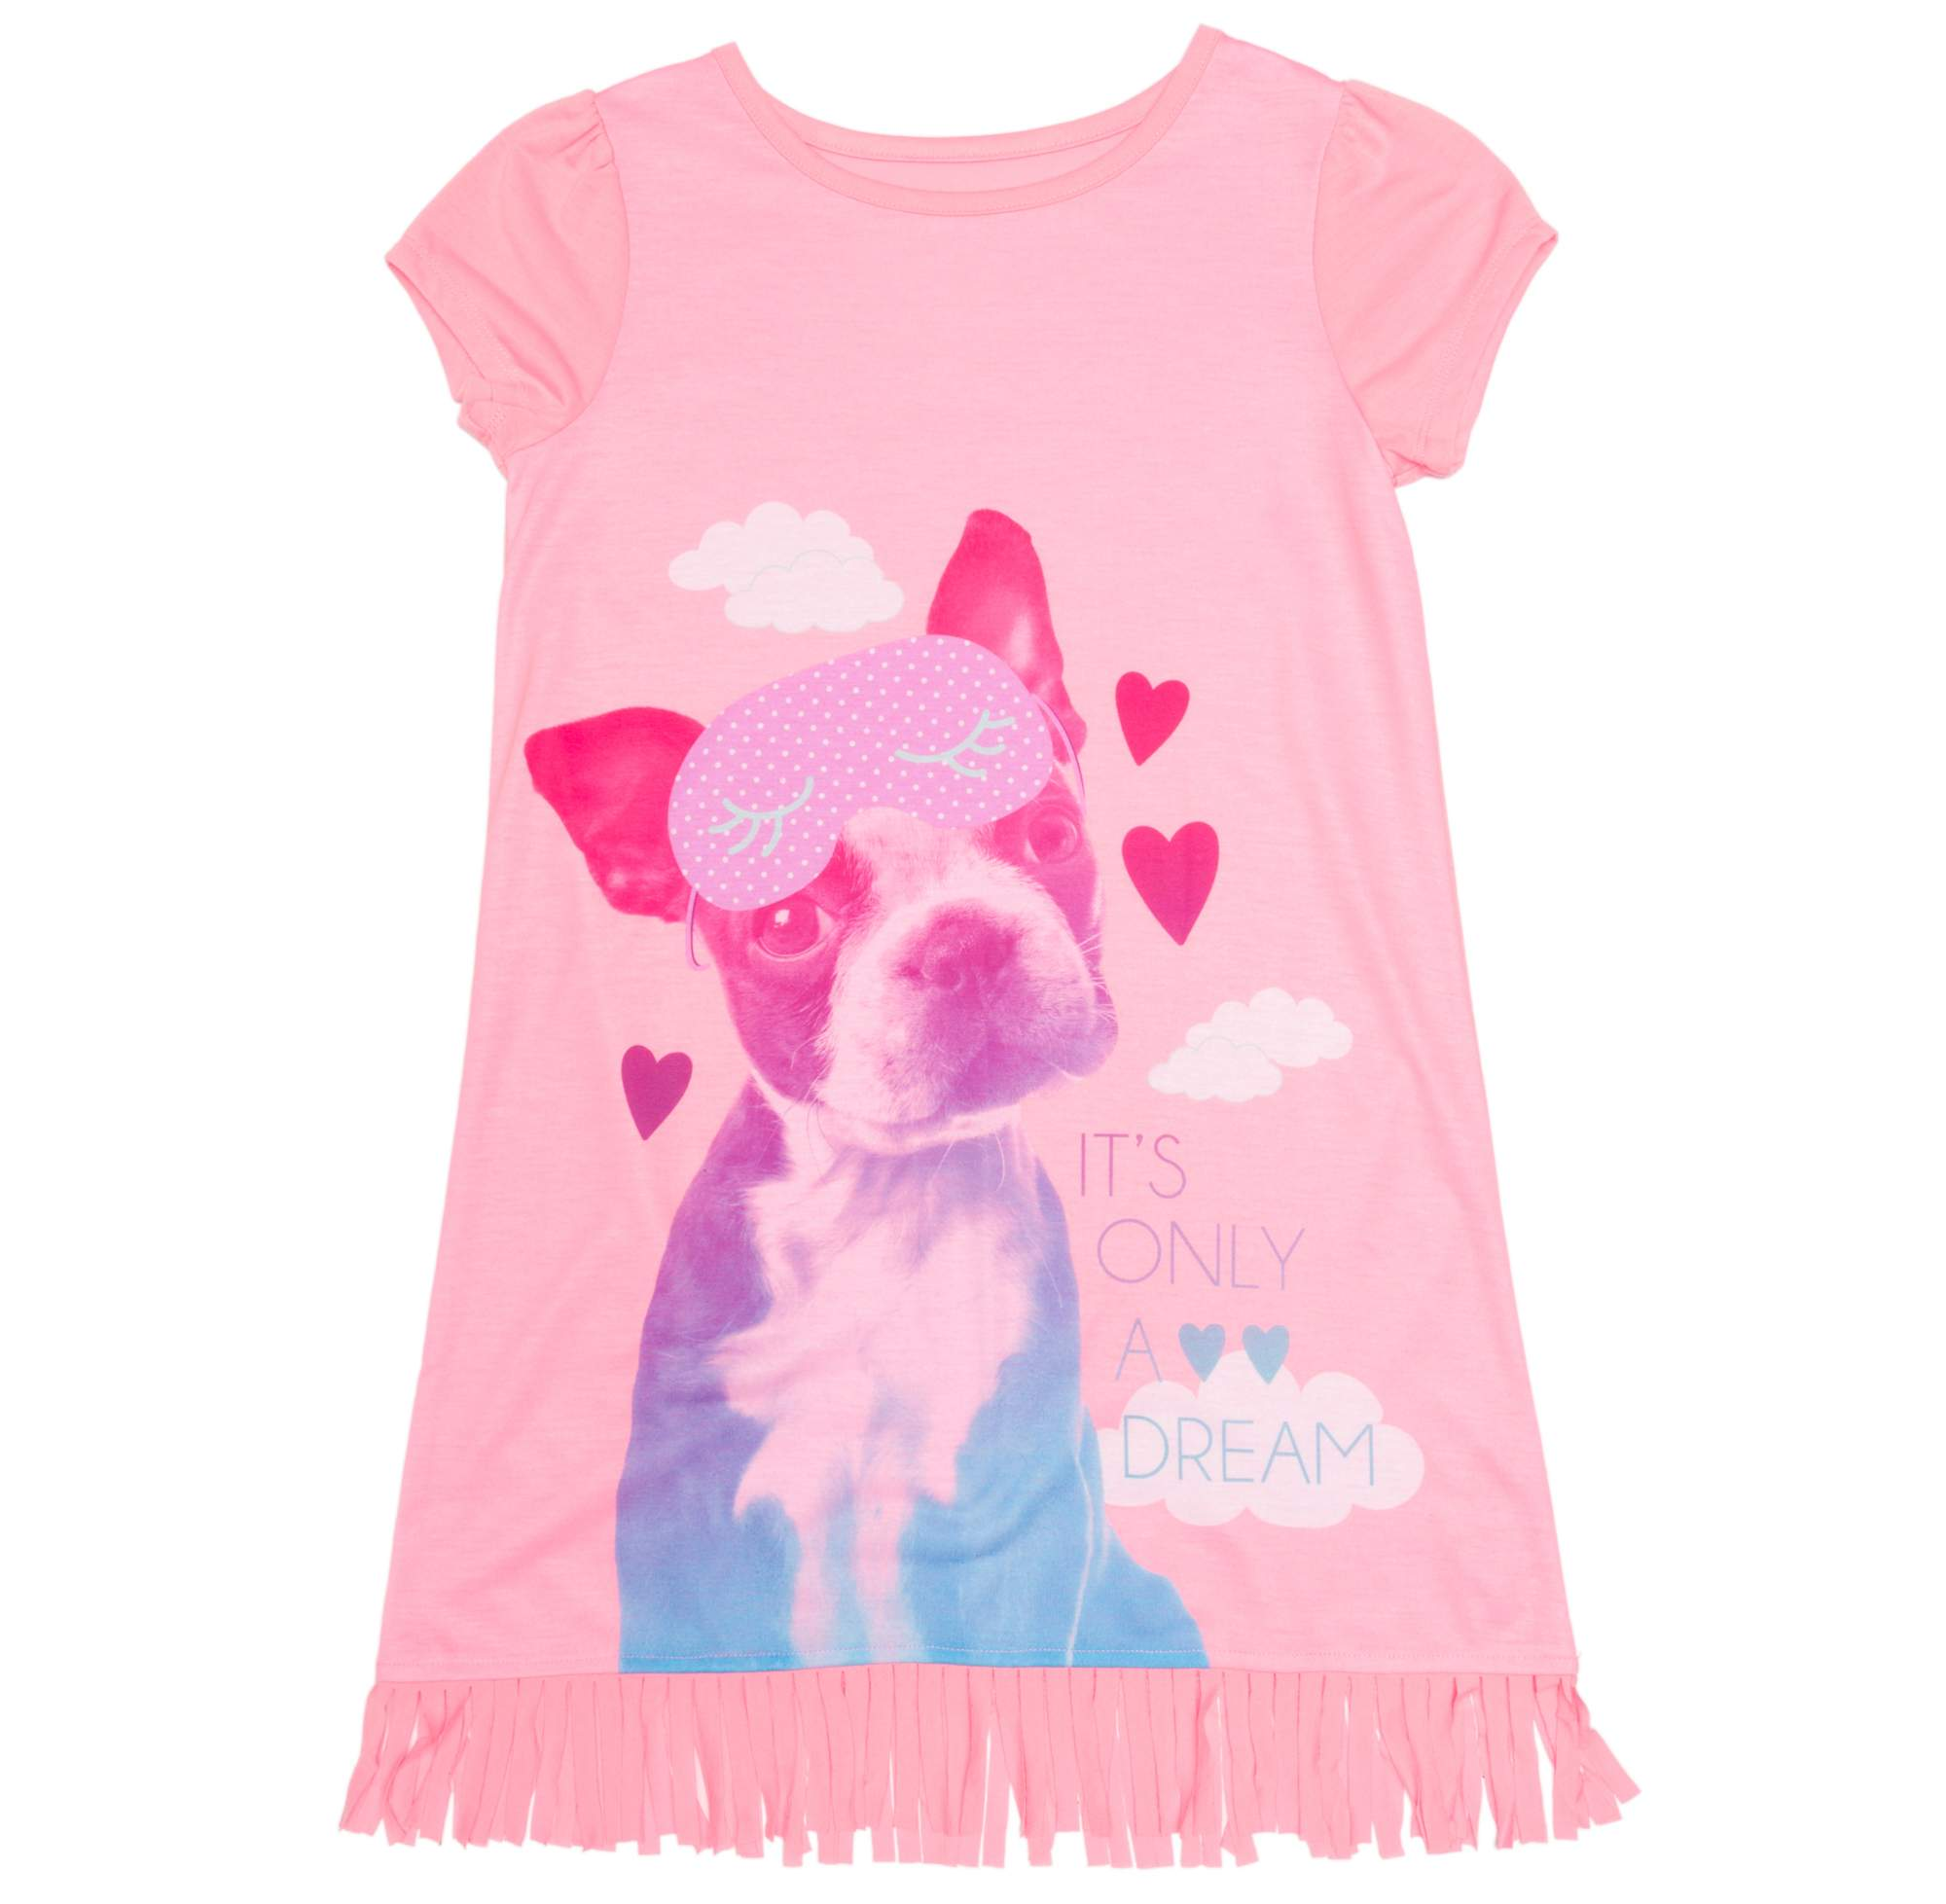 Image of Girl's 'It's Only a Dream' Graphic Sleep Shirt with Fringe